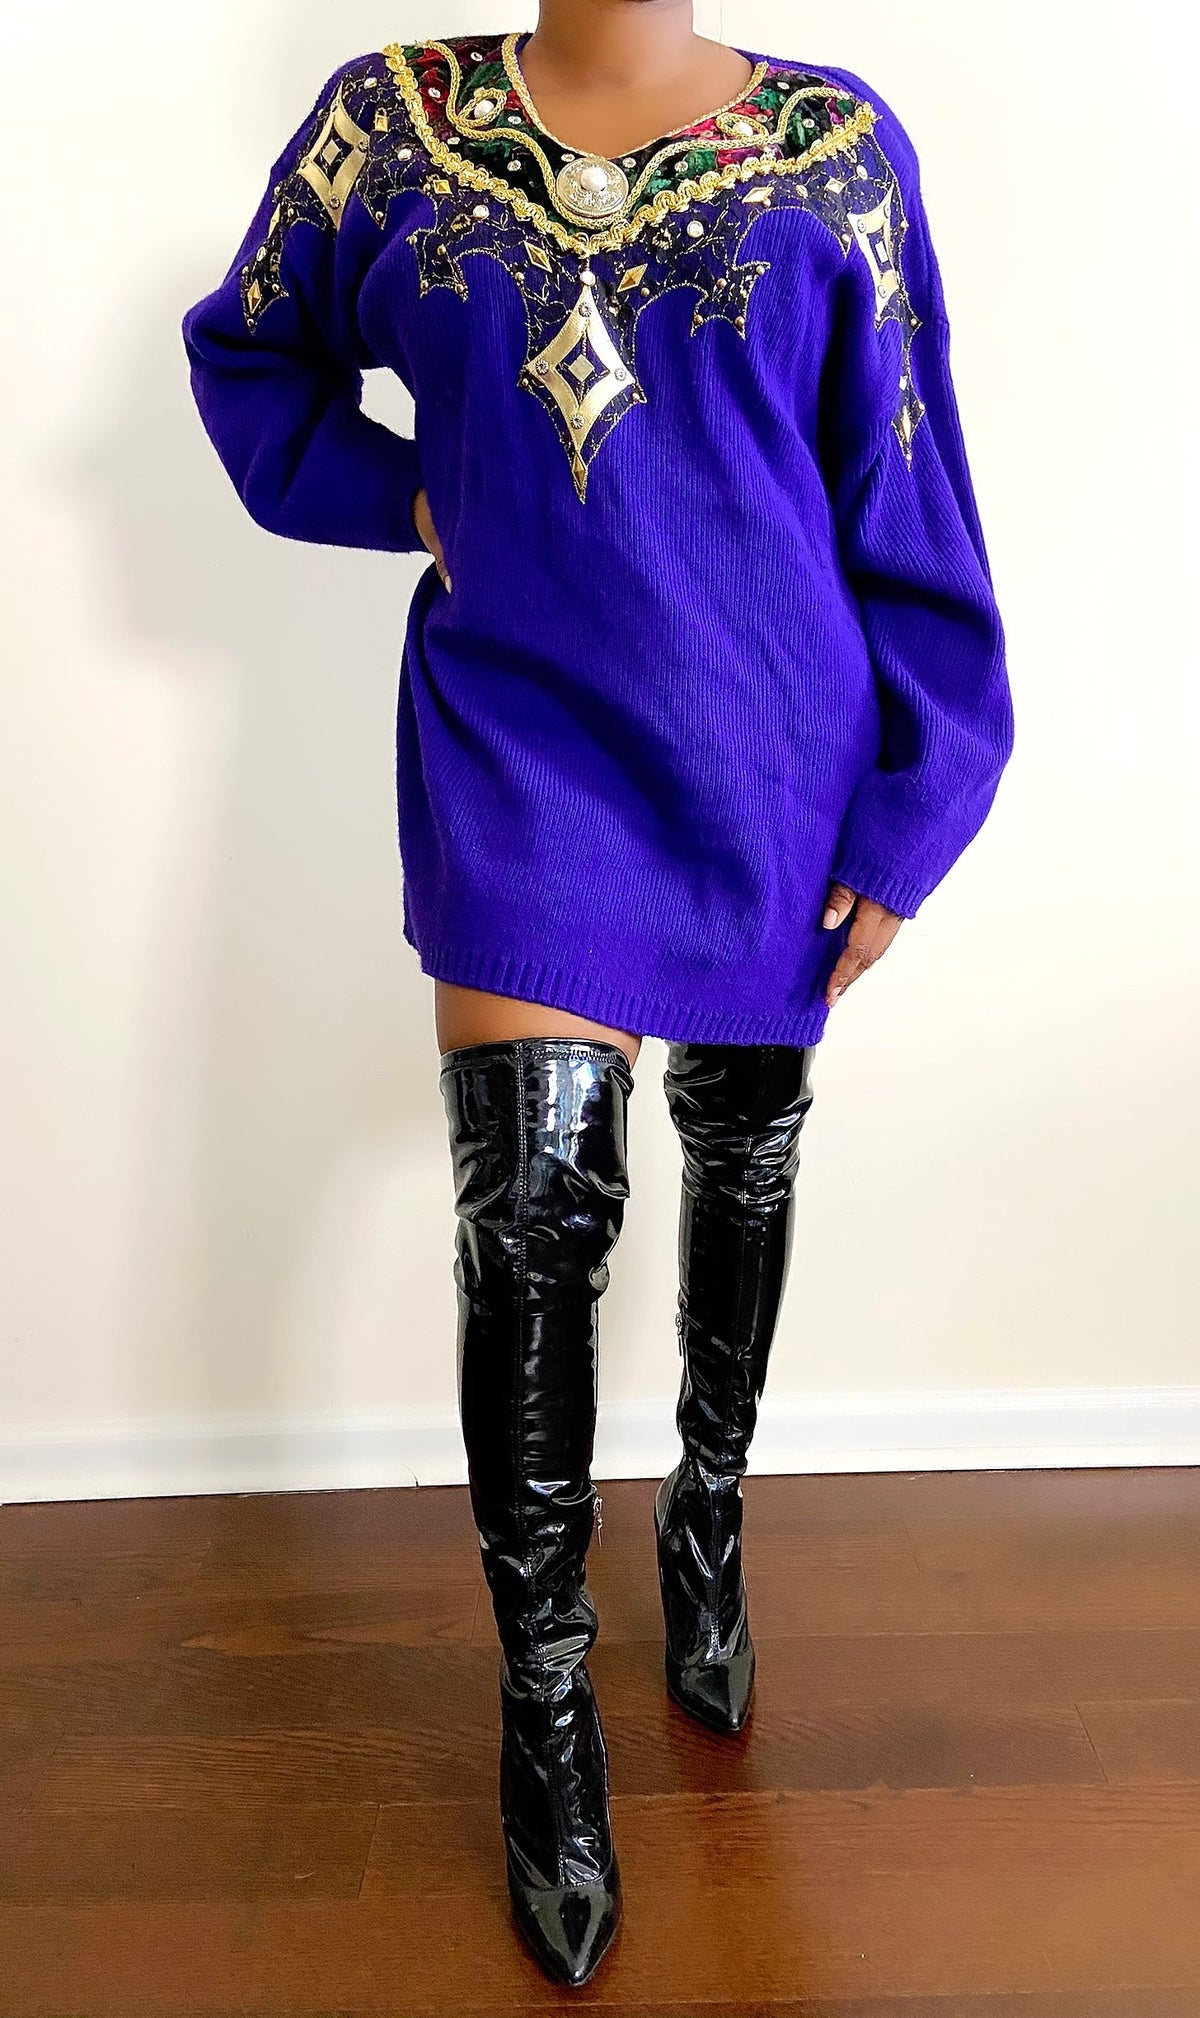 Image of Vintage Ornate Purple Sweater Dress - M/L